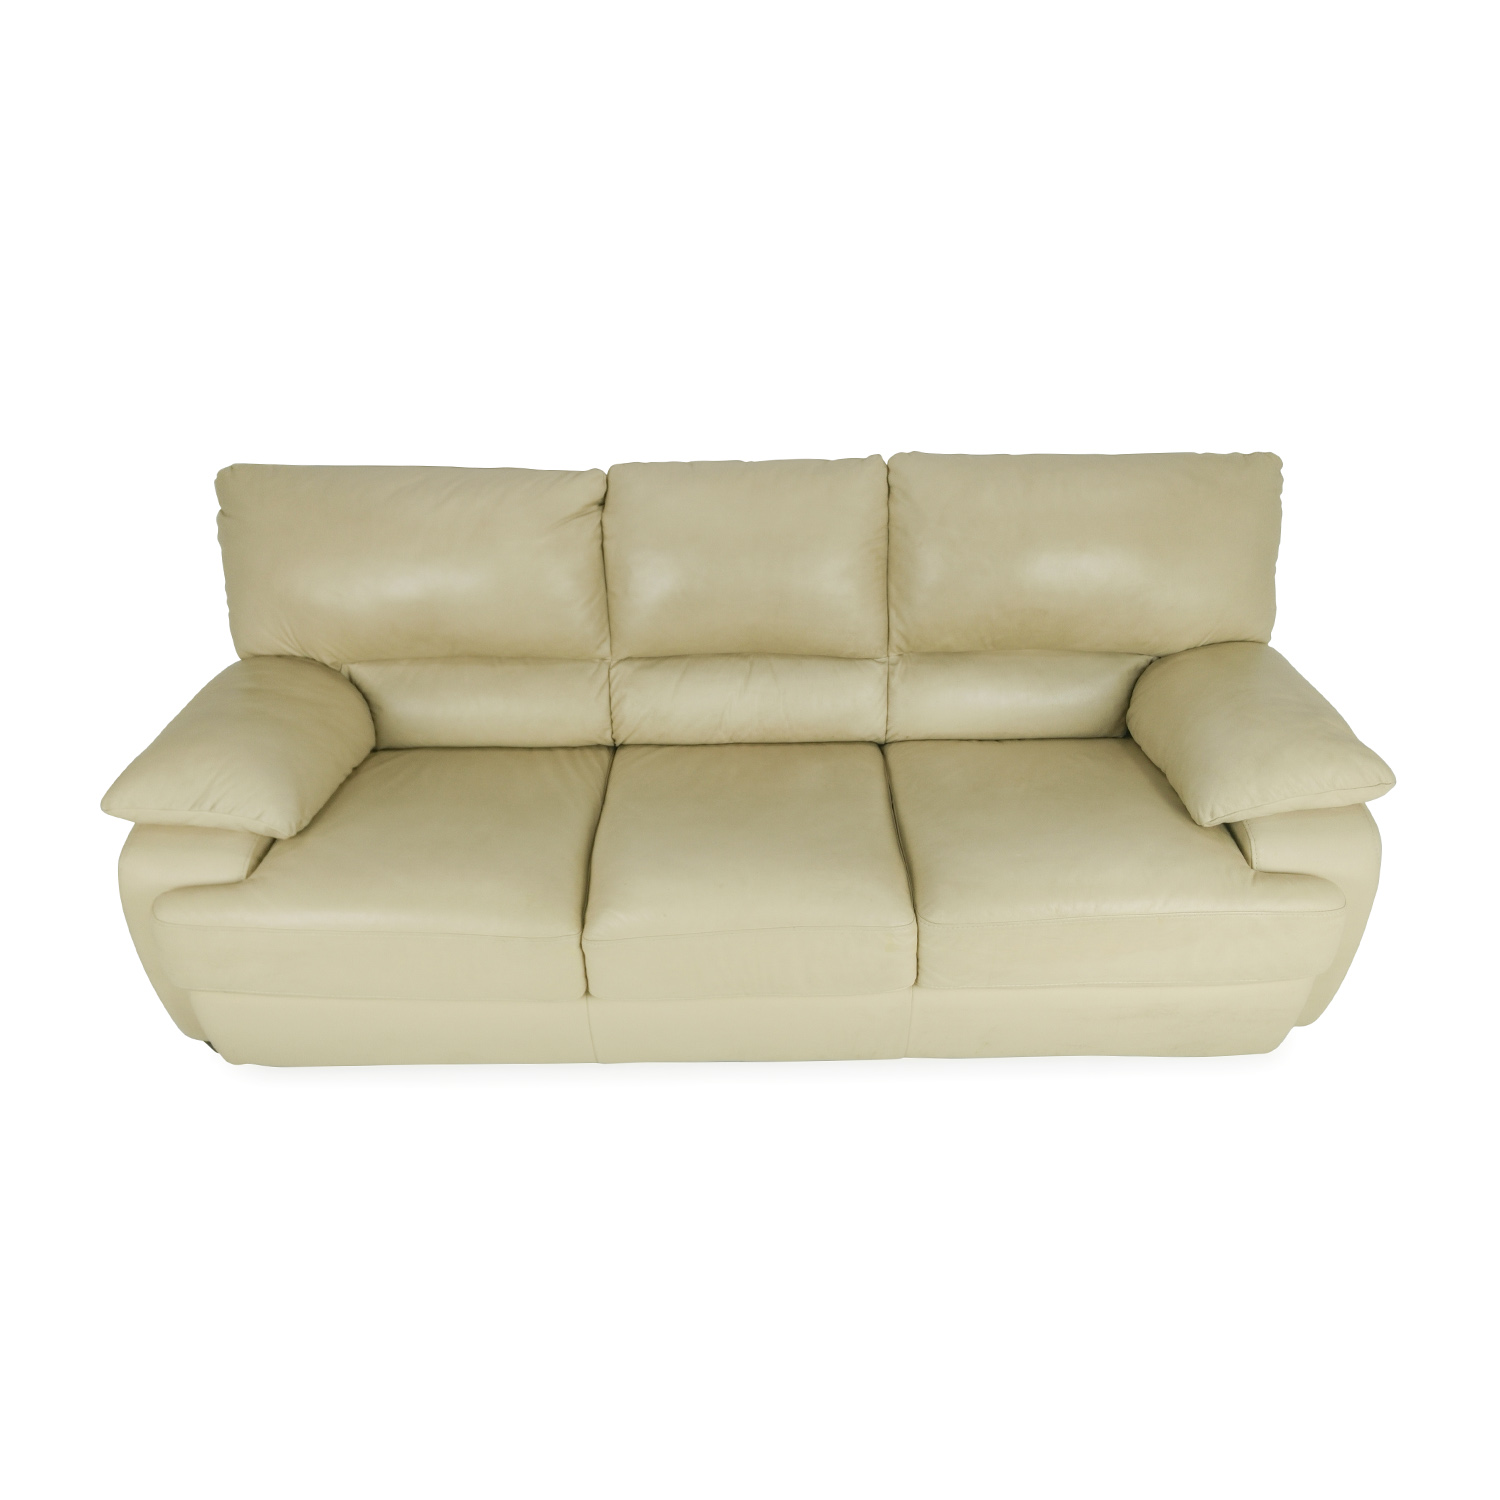 Tan Leather Couch nj